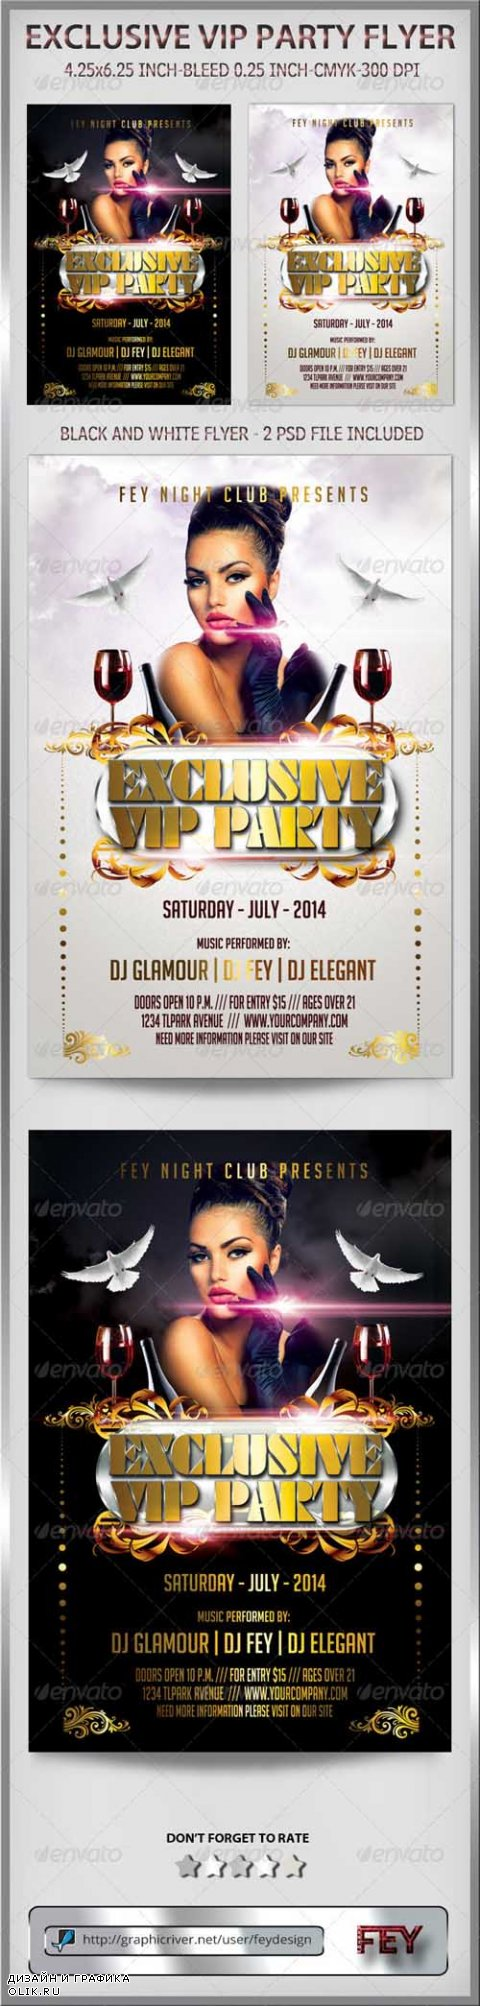 Exclusive VIP Party Flyer 8275134